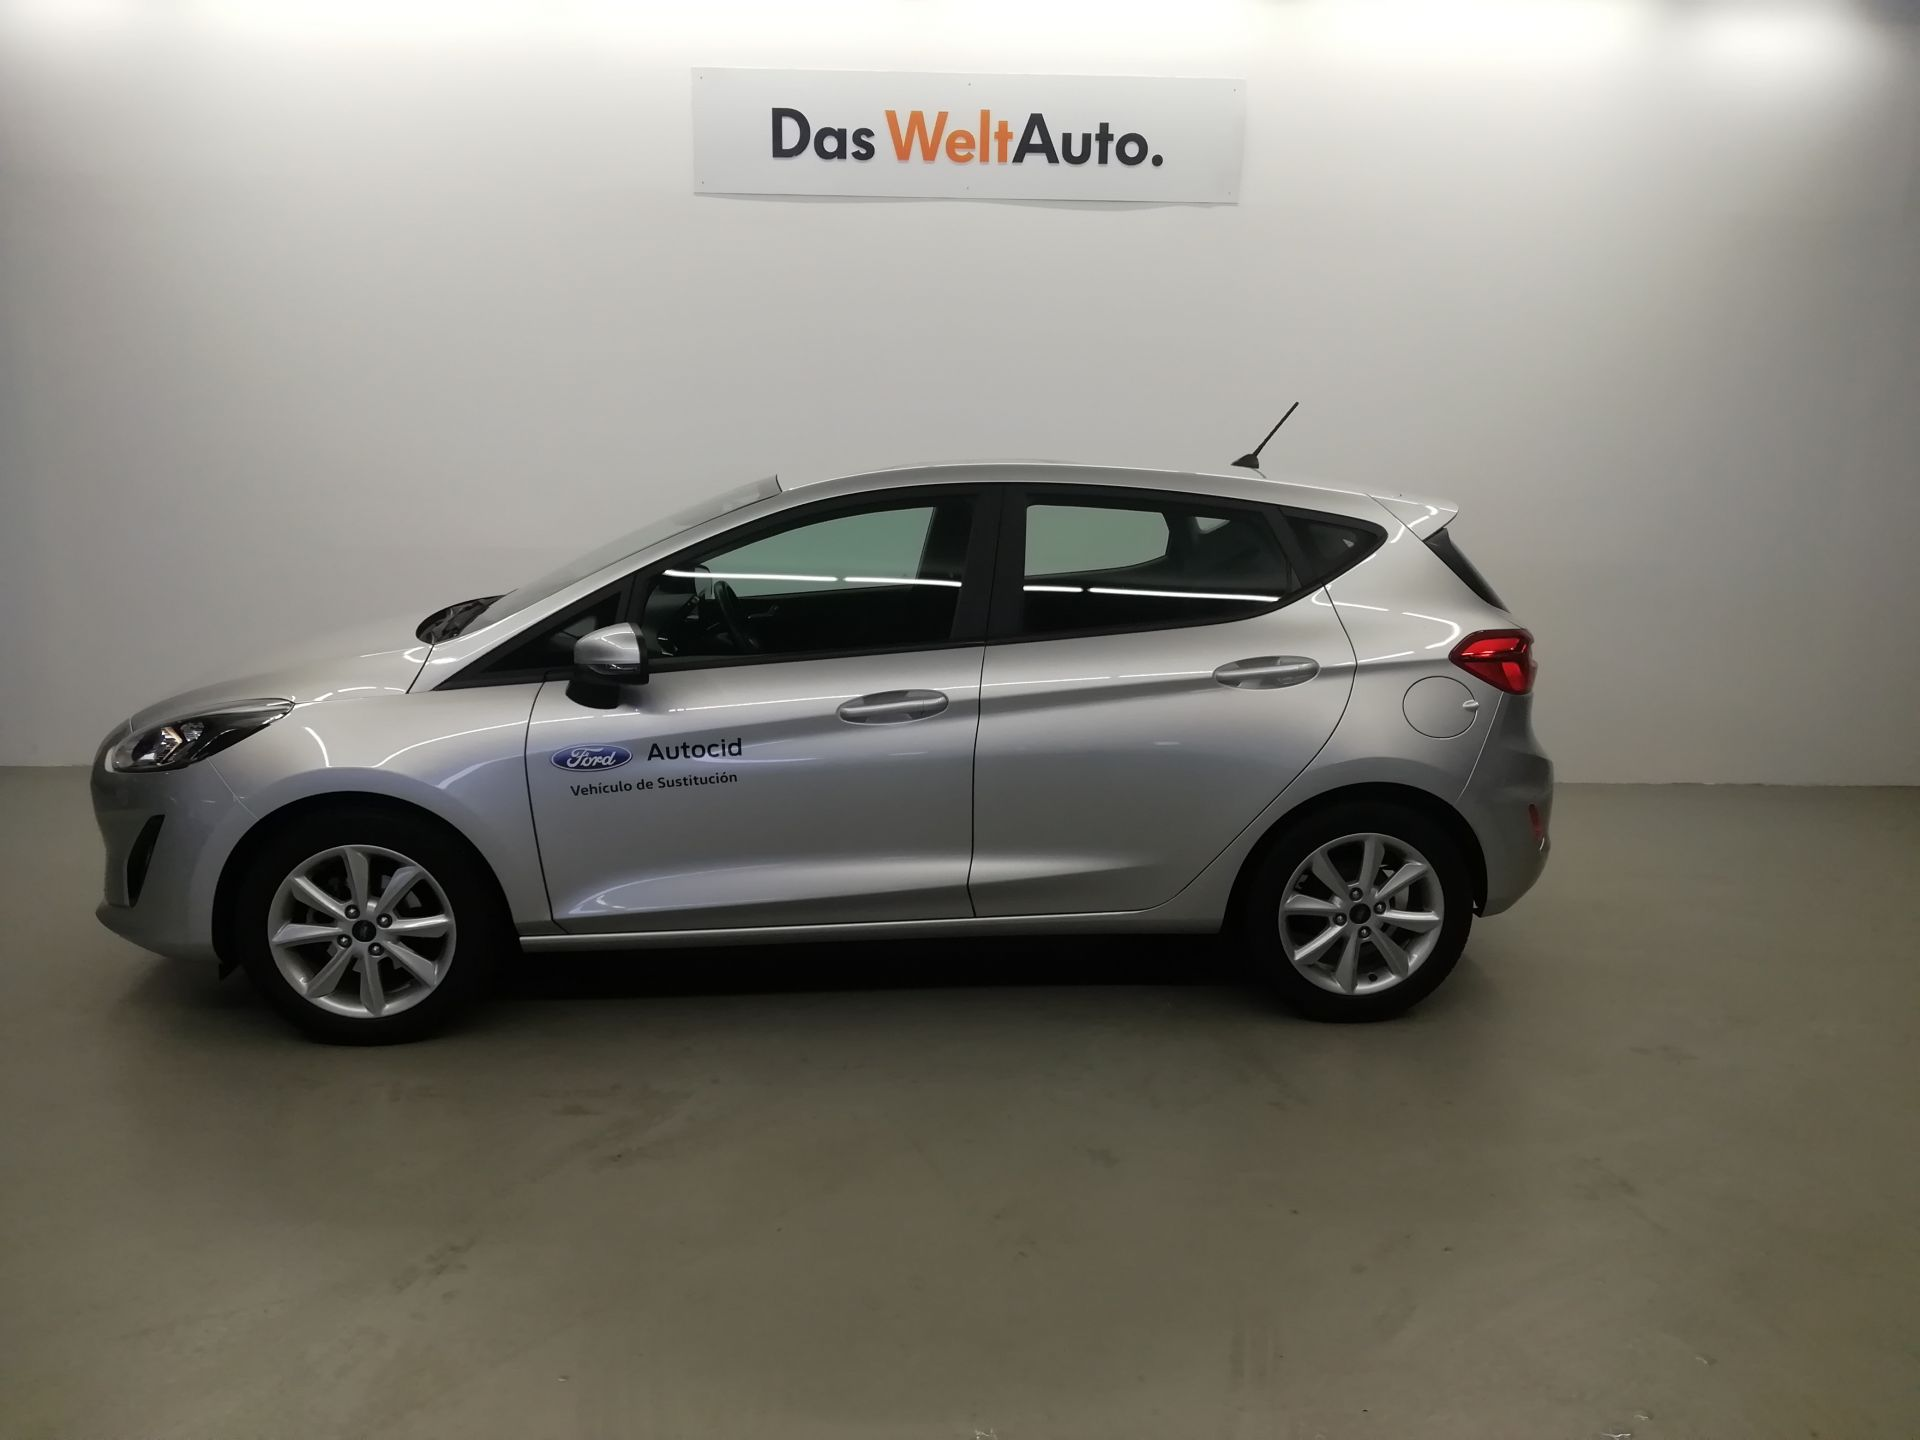 Ford Fiesta 1.0 EcoBoost 74kW Trend+ S/S 5p